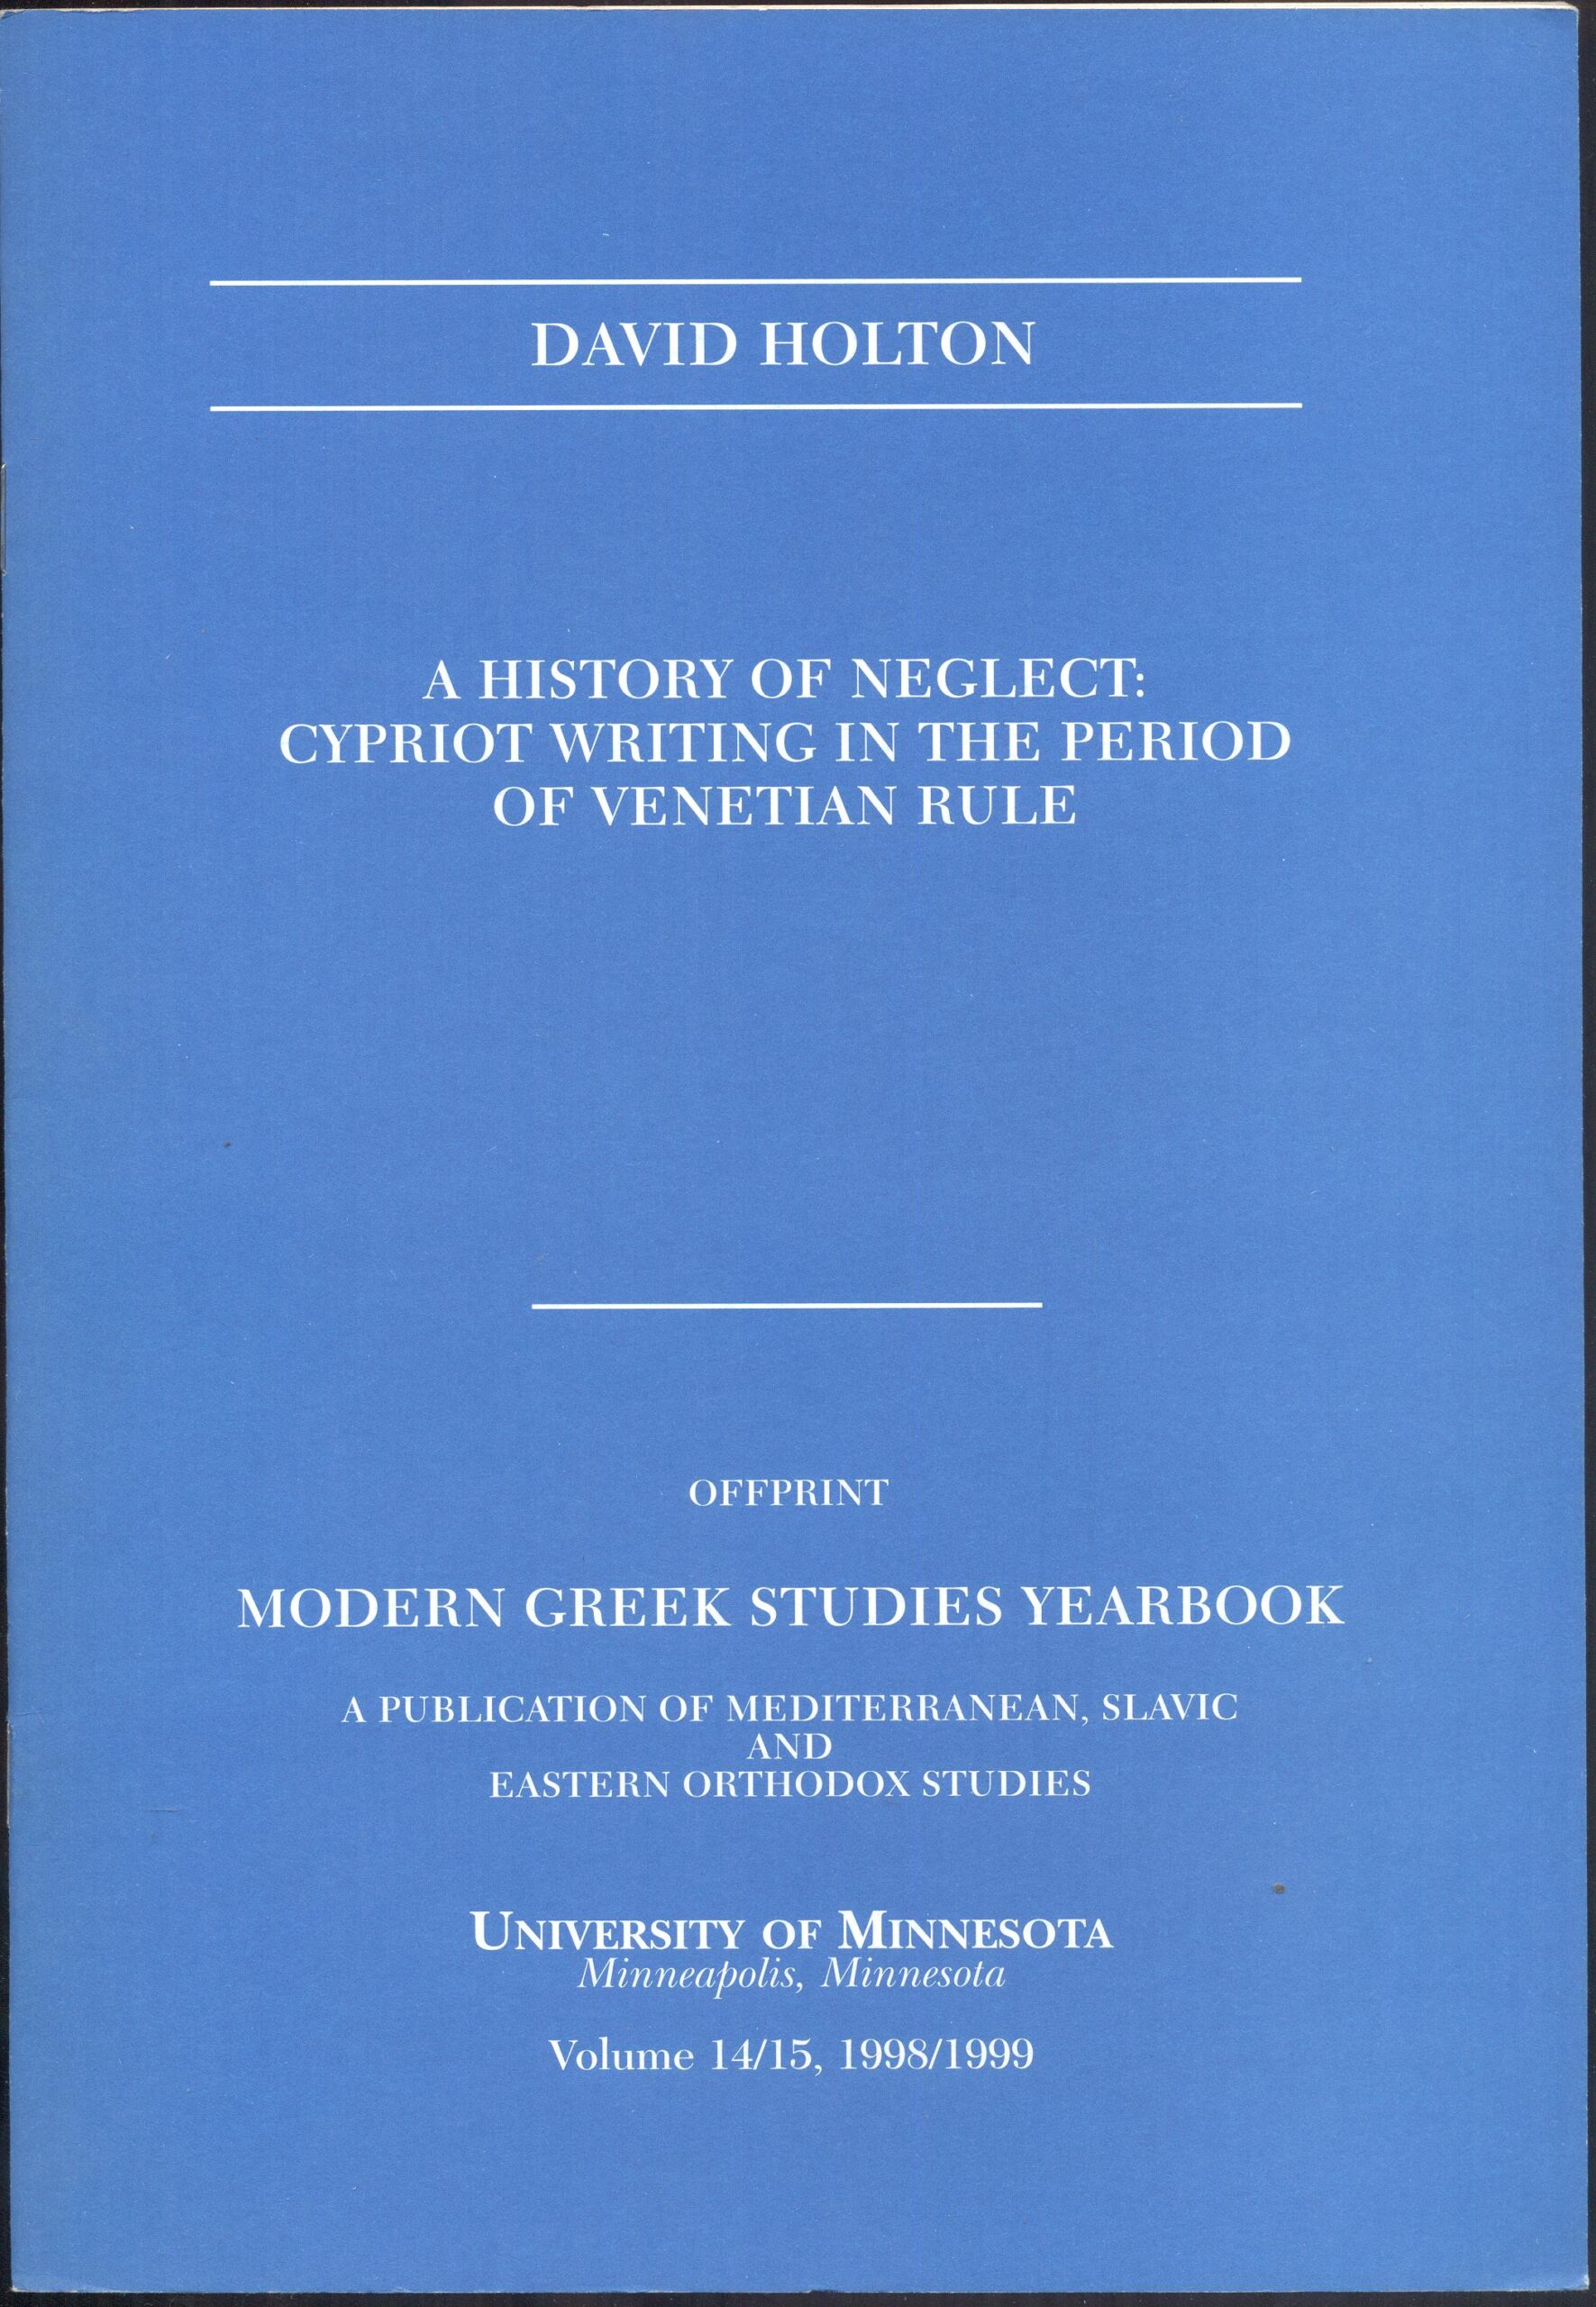 A HISTORY OF NEGLECT CYPRIOT WRITING IN THE PERIOD OF VENETICAN RULE